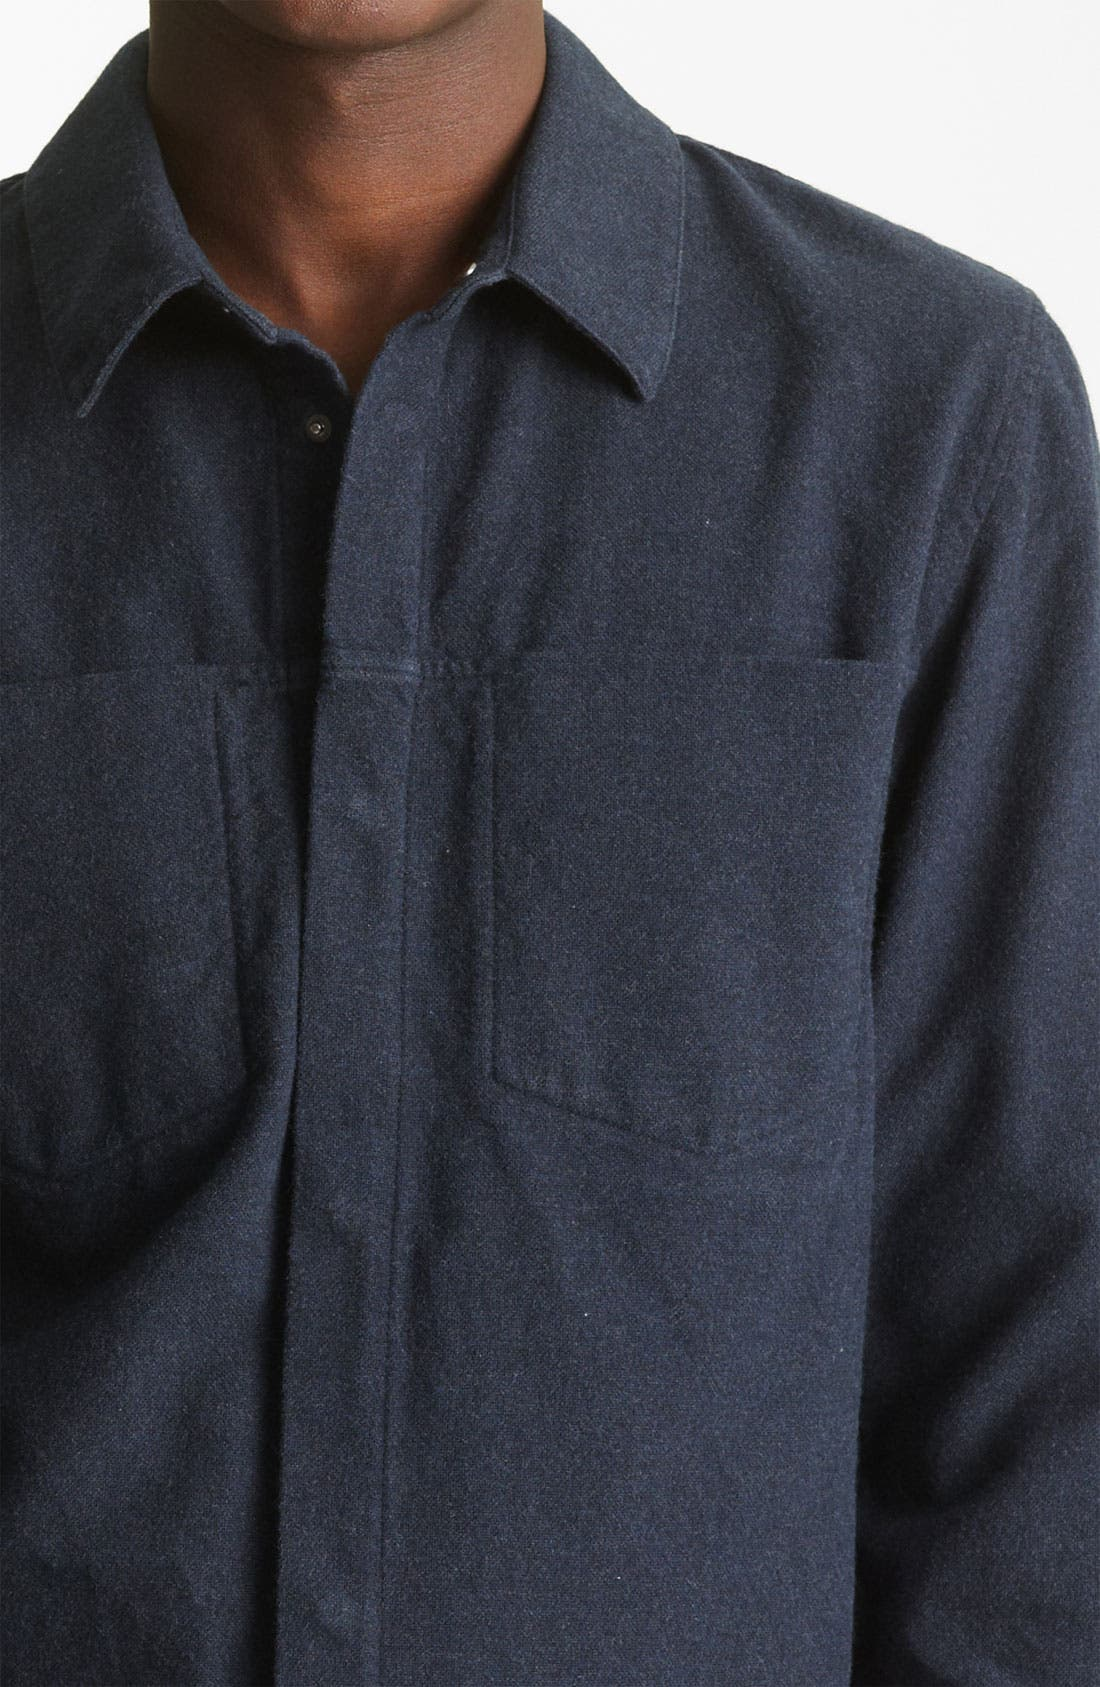 Alternate Image 3  - T by Alexander Wang Cotton Flannel Shirt